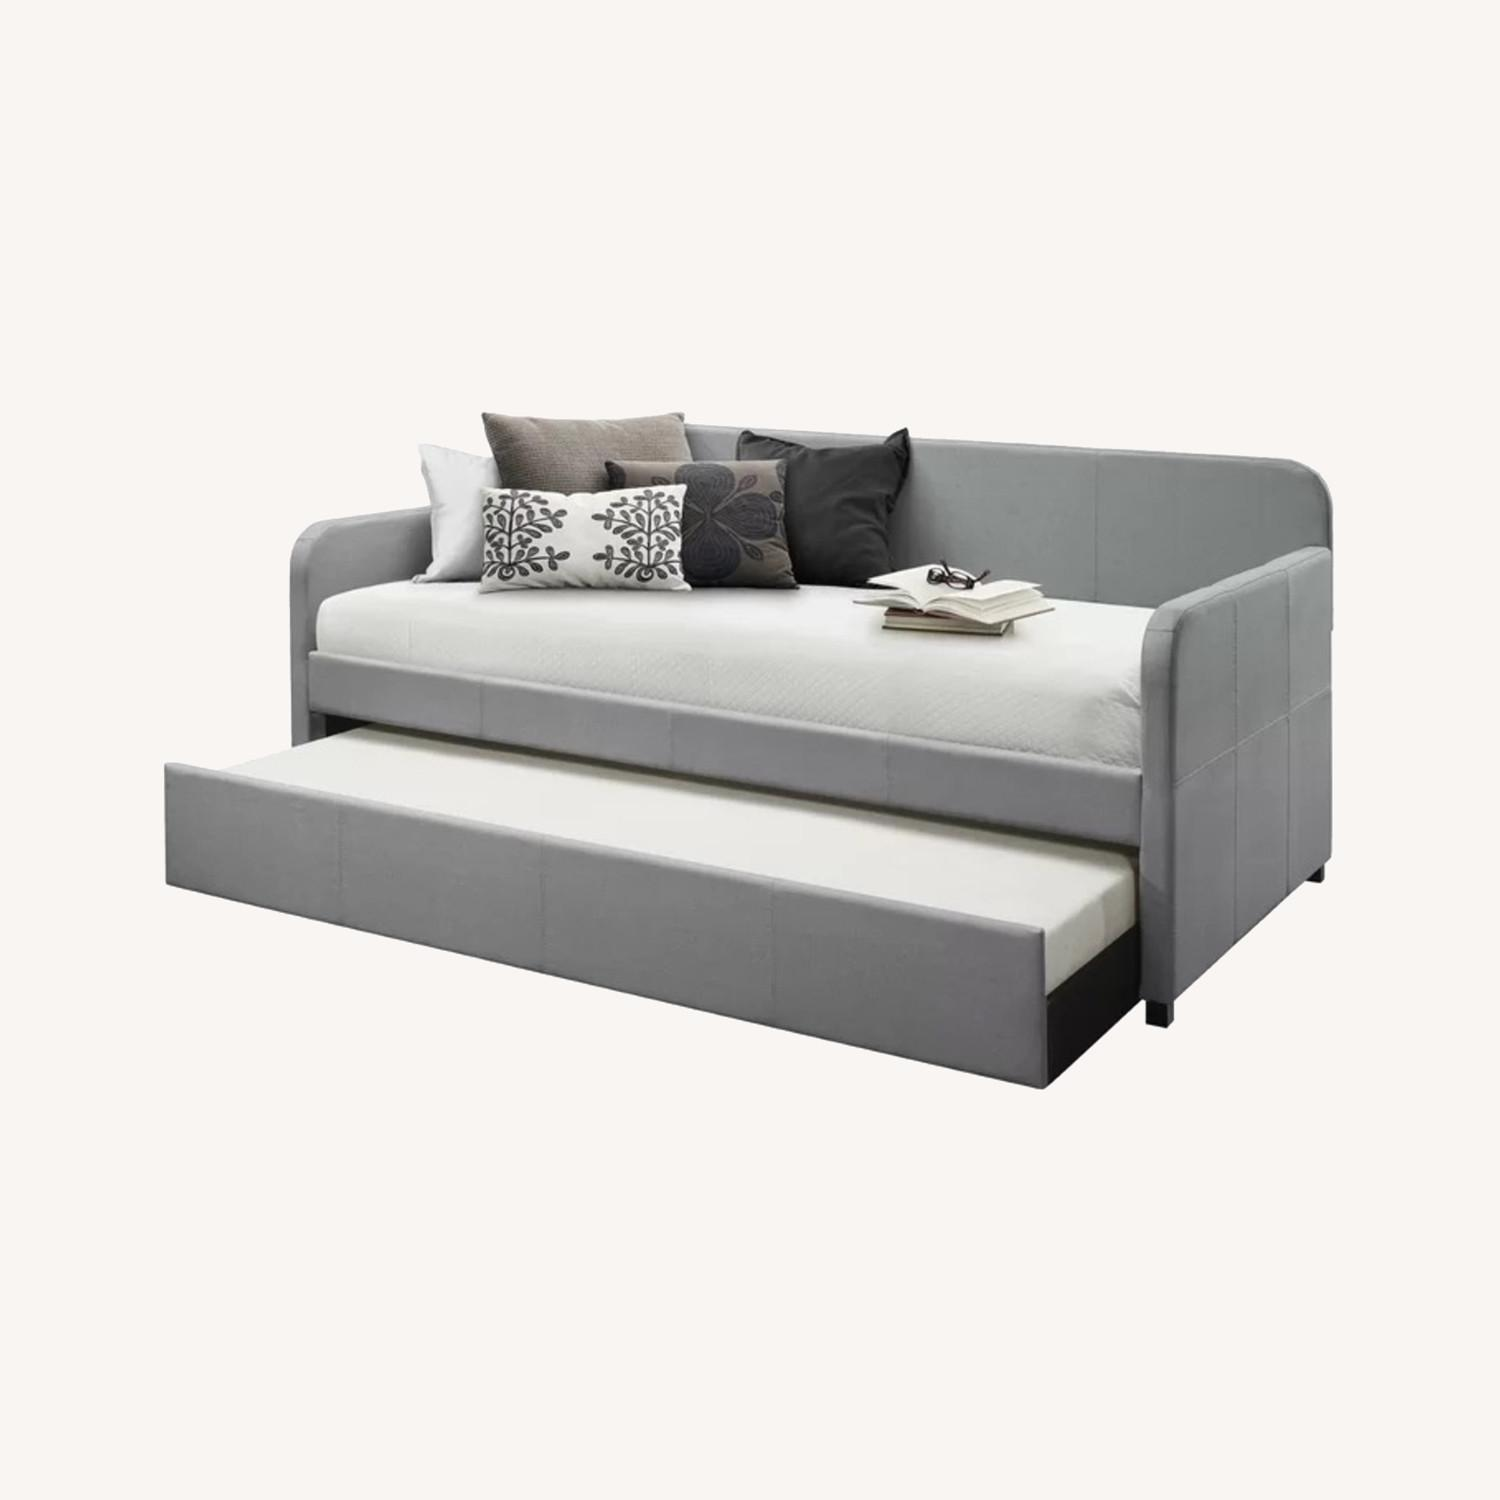 Wayfair Upholstered Long Twin Daybed with Trundle Storage - image-0